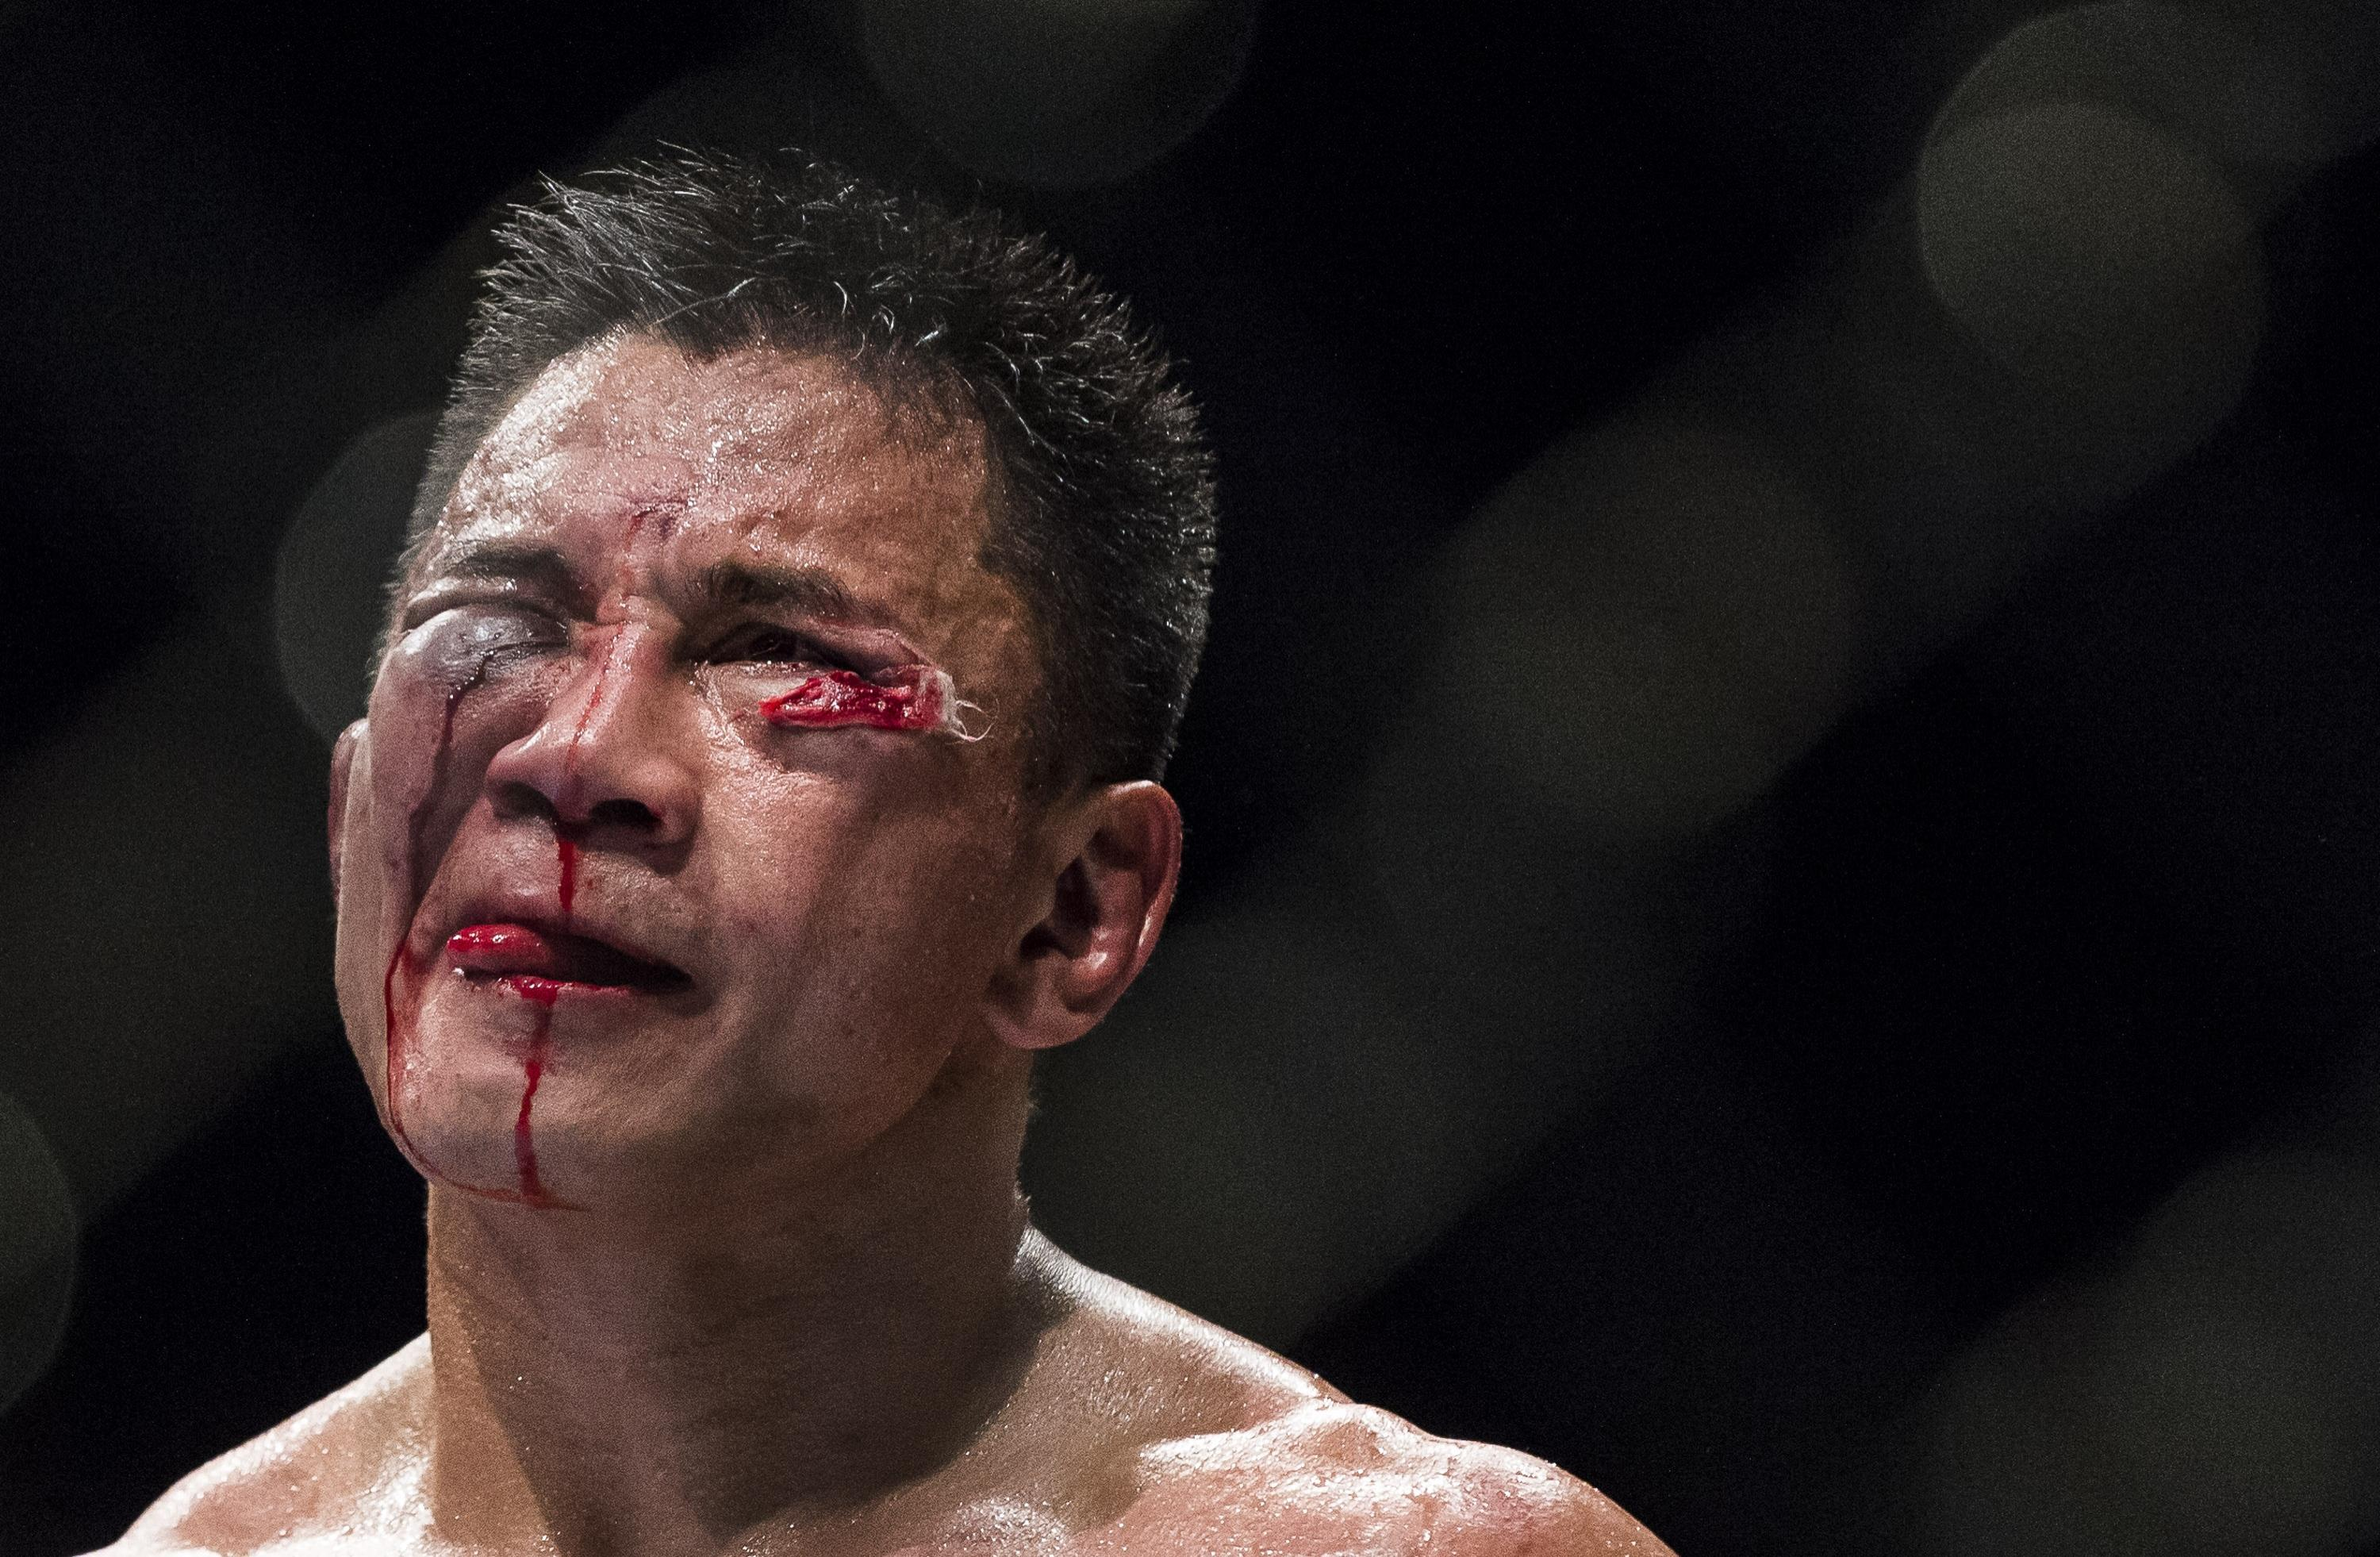 In face of failed test, UFC's Cung Le denies PED use